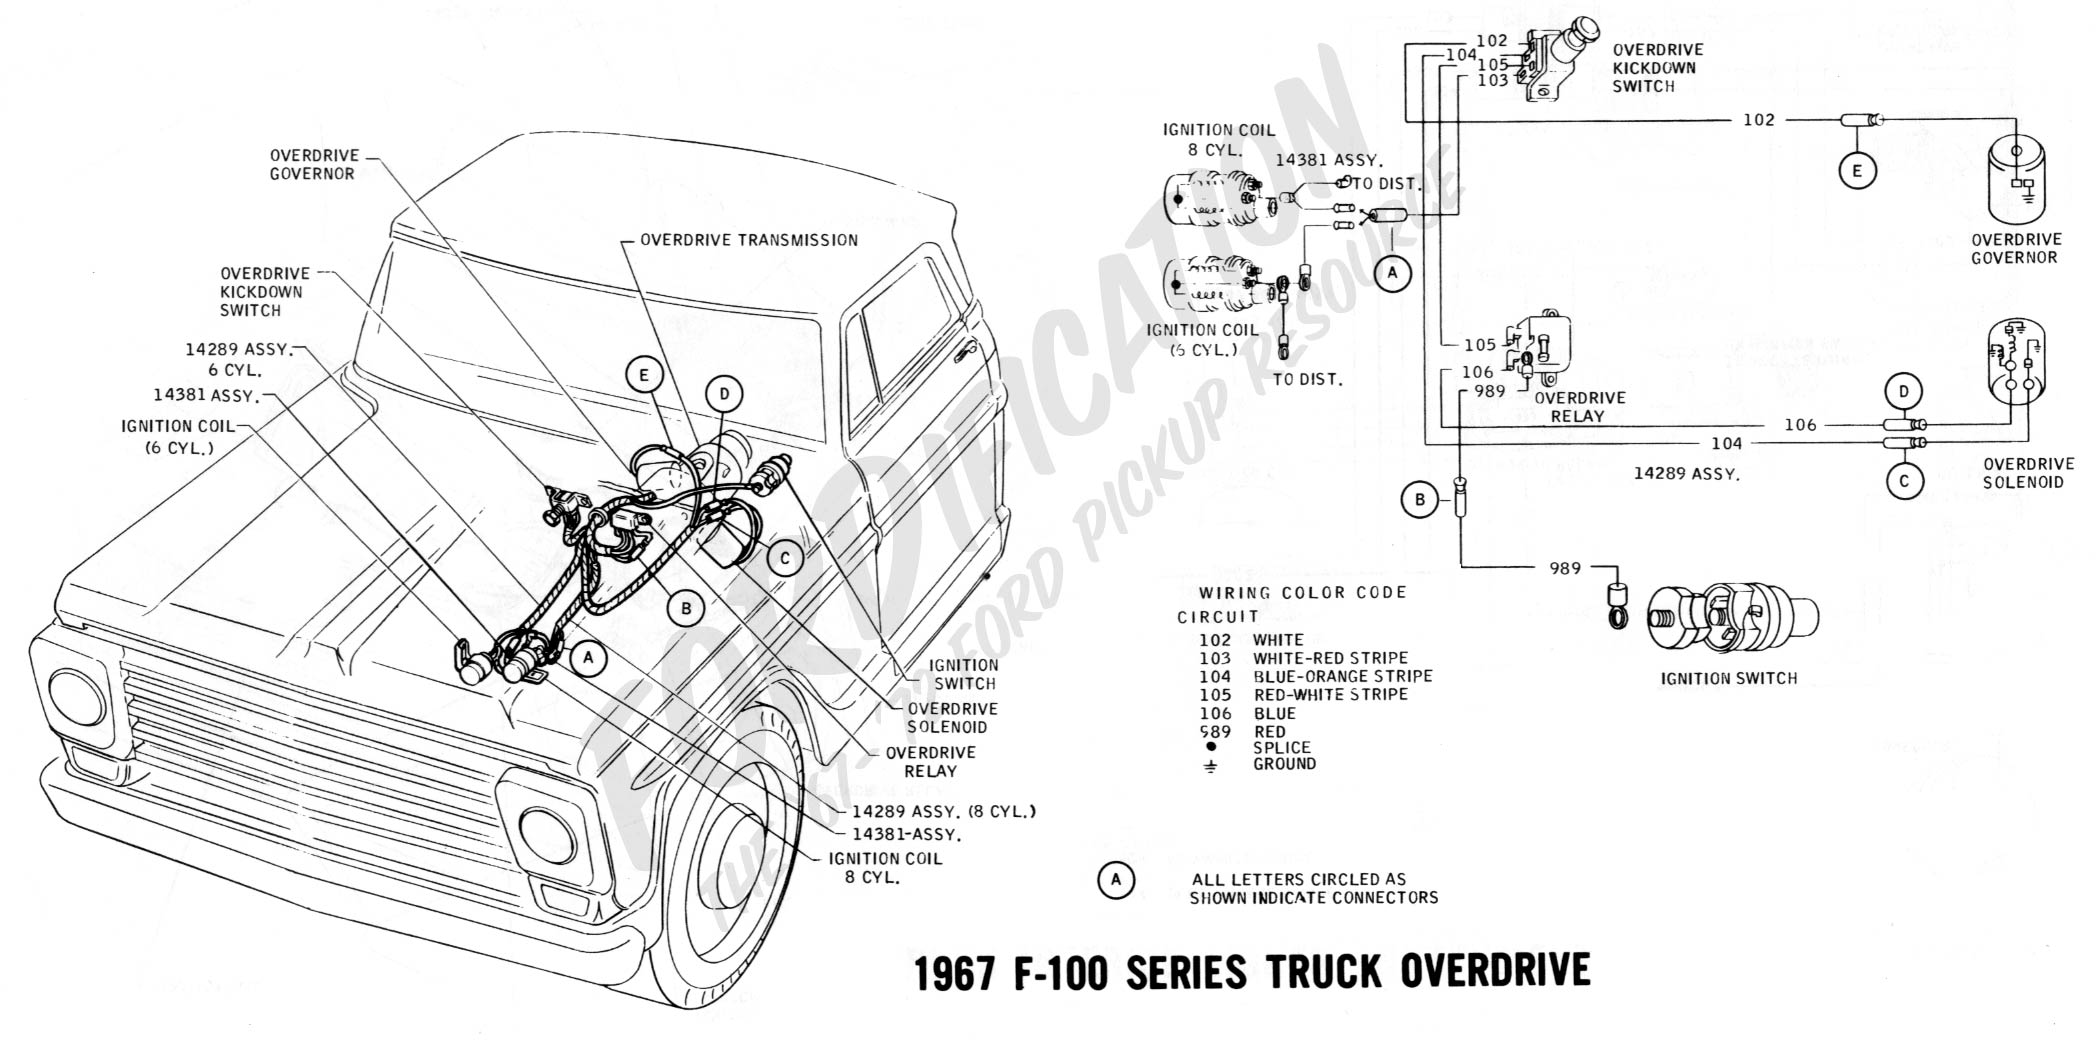 72 ford f100 dash wiring diagram satellite tv diagrams truck technical drawings and schematics section h